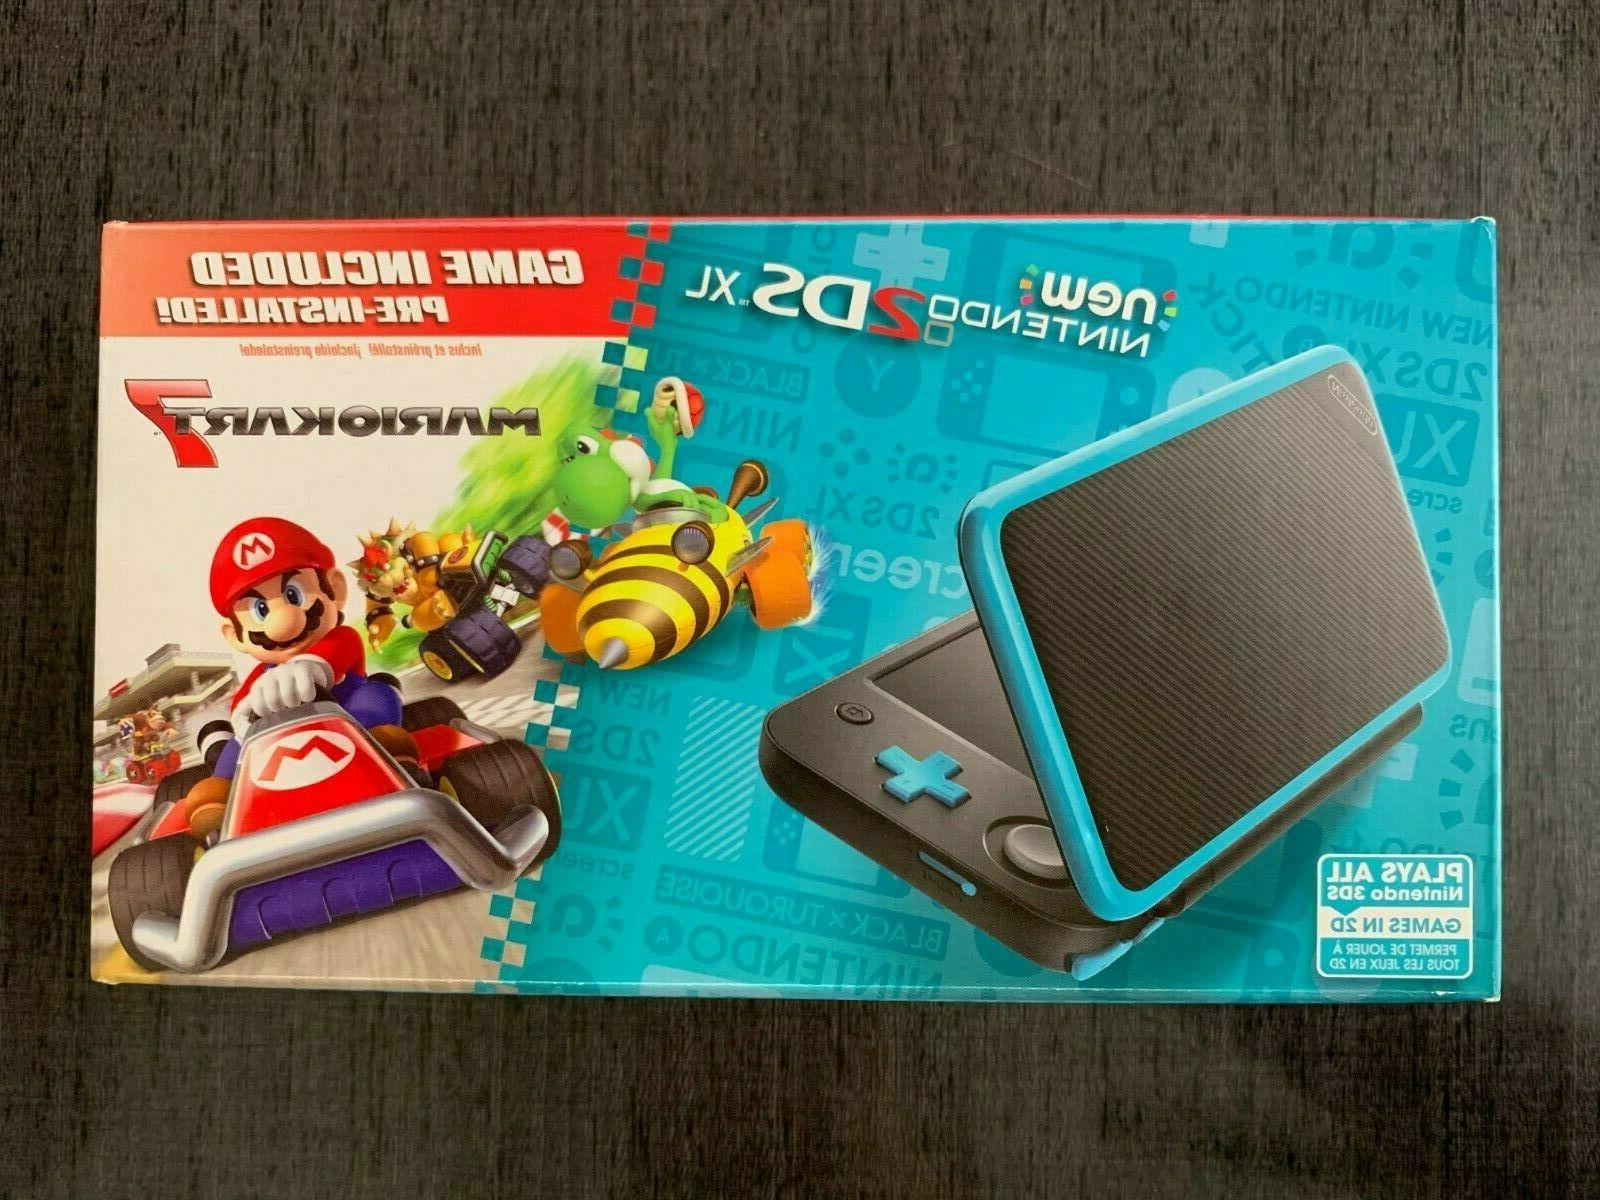 2ds xl black turquoise with mario kart